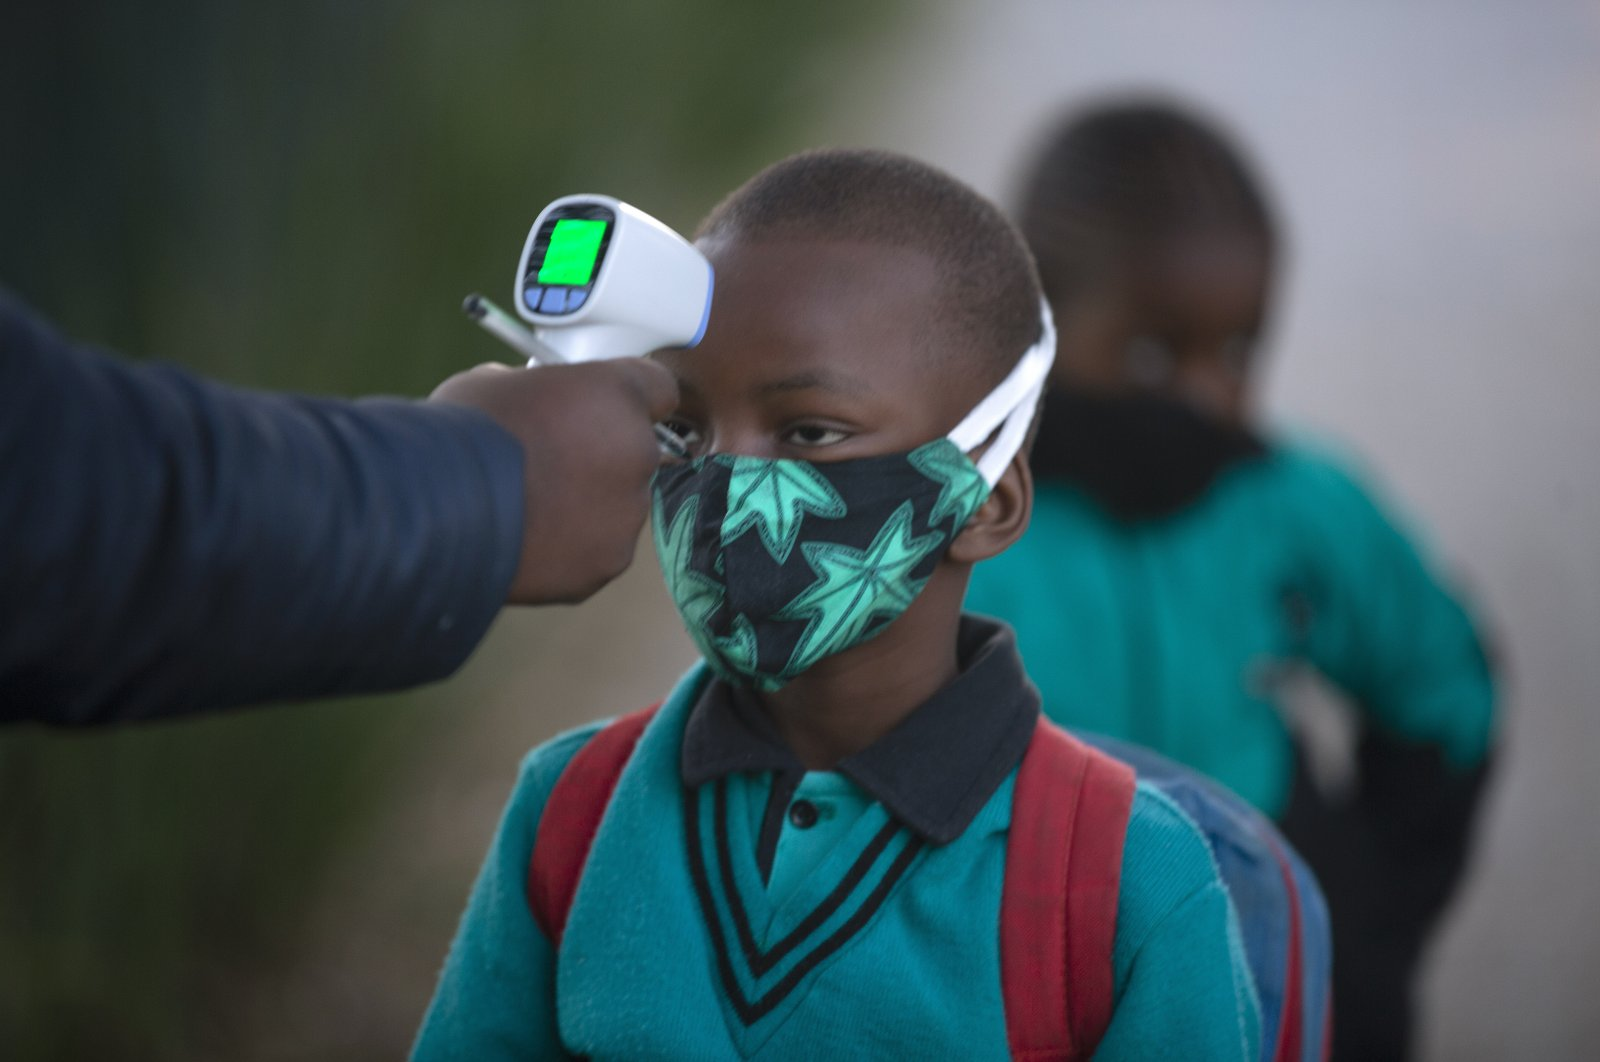 A pupil's temperature is checked on returning to school, Johannesburg, July 7, 2020. (AP Photo)